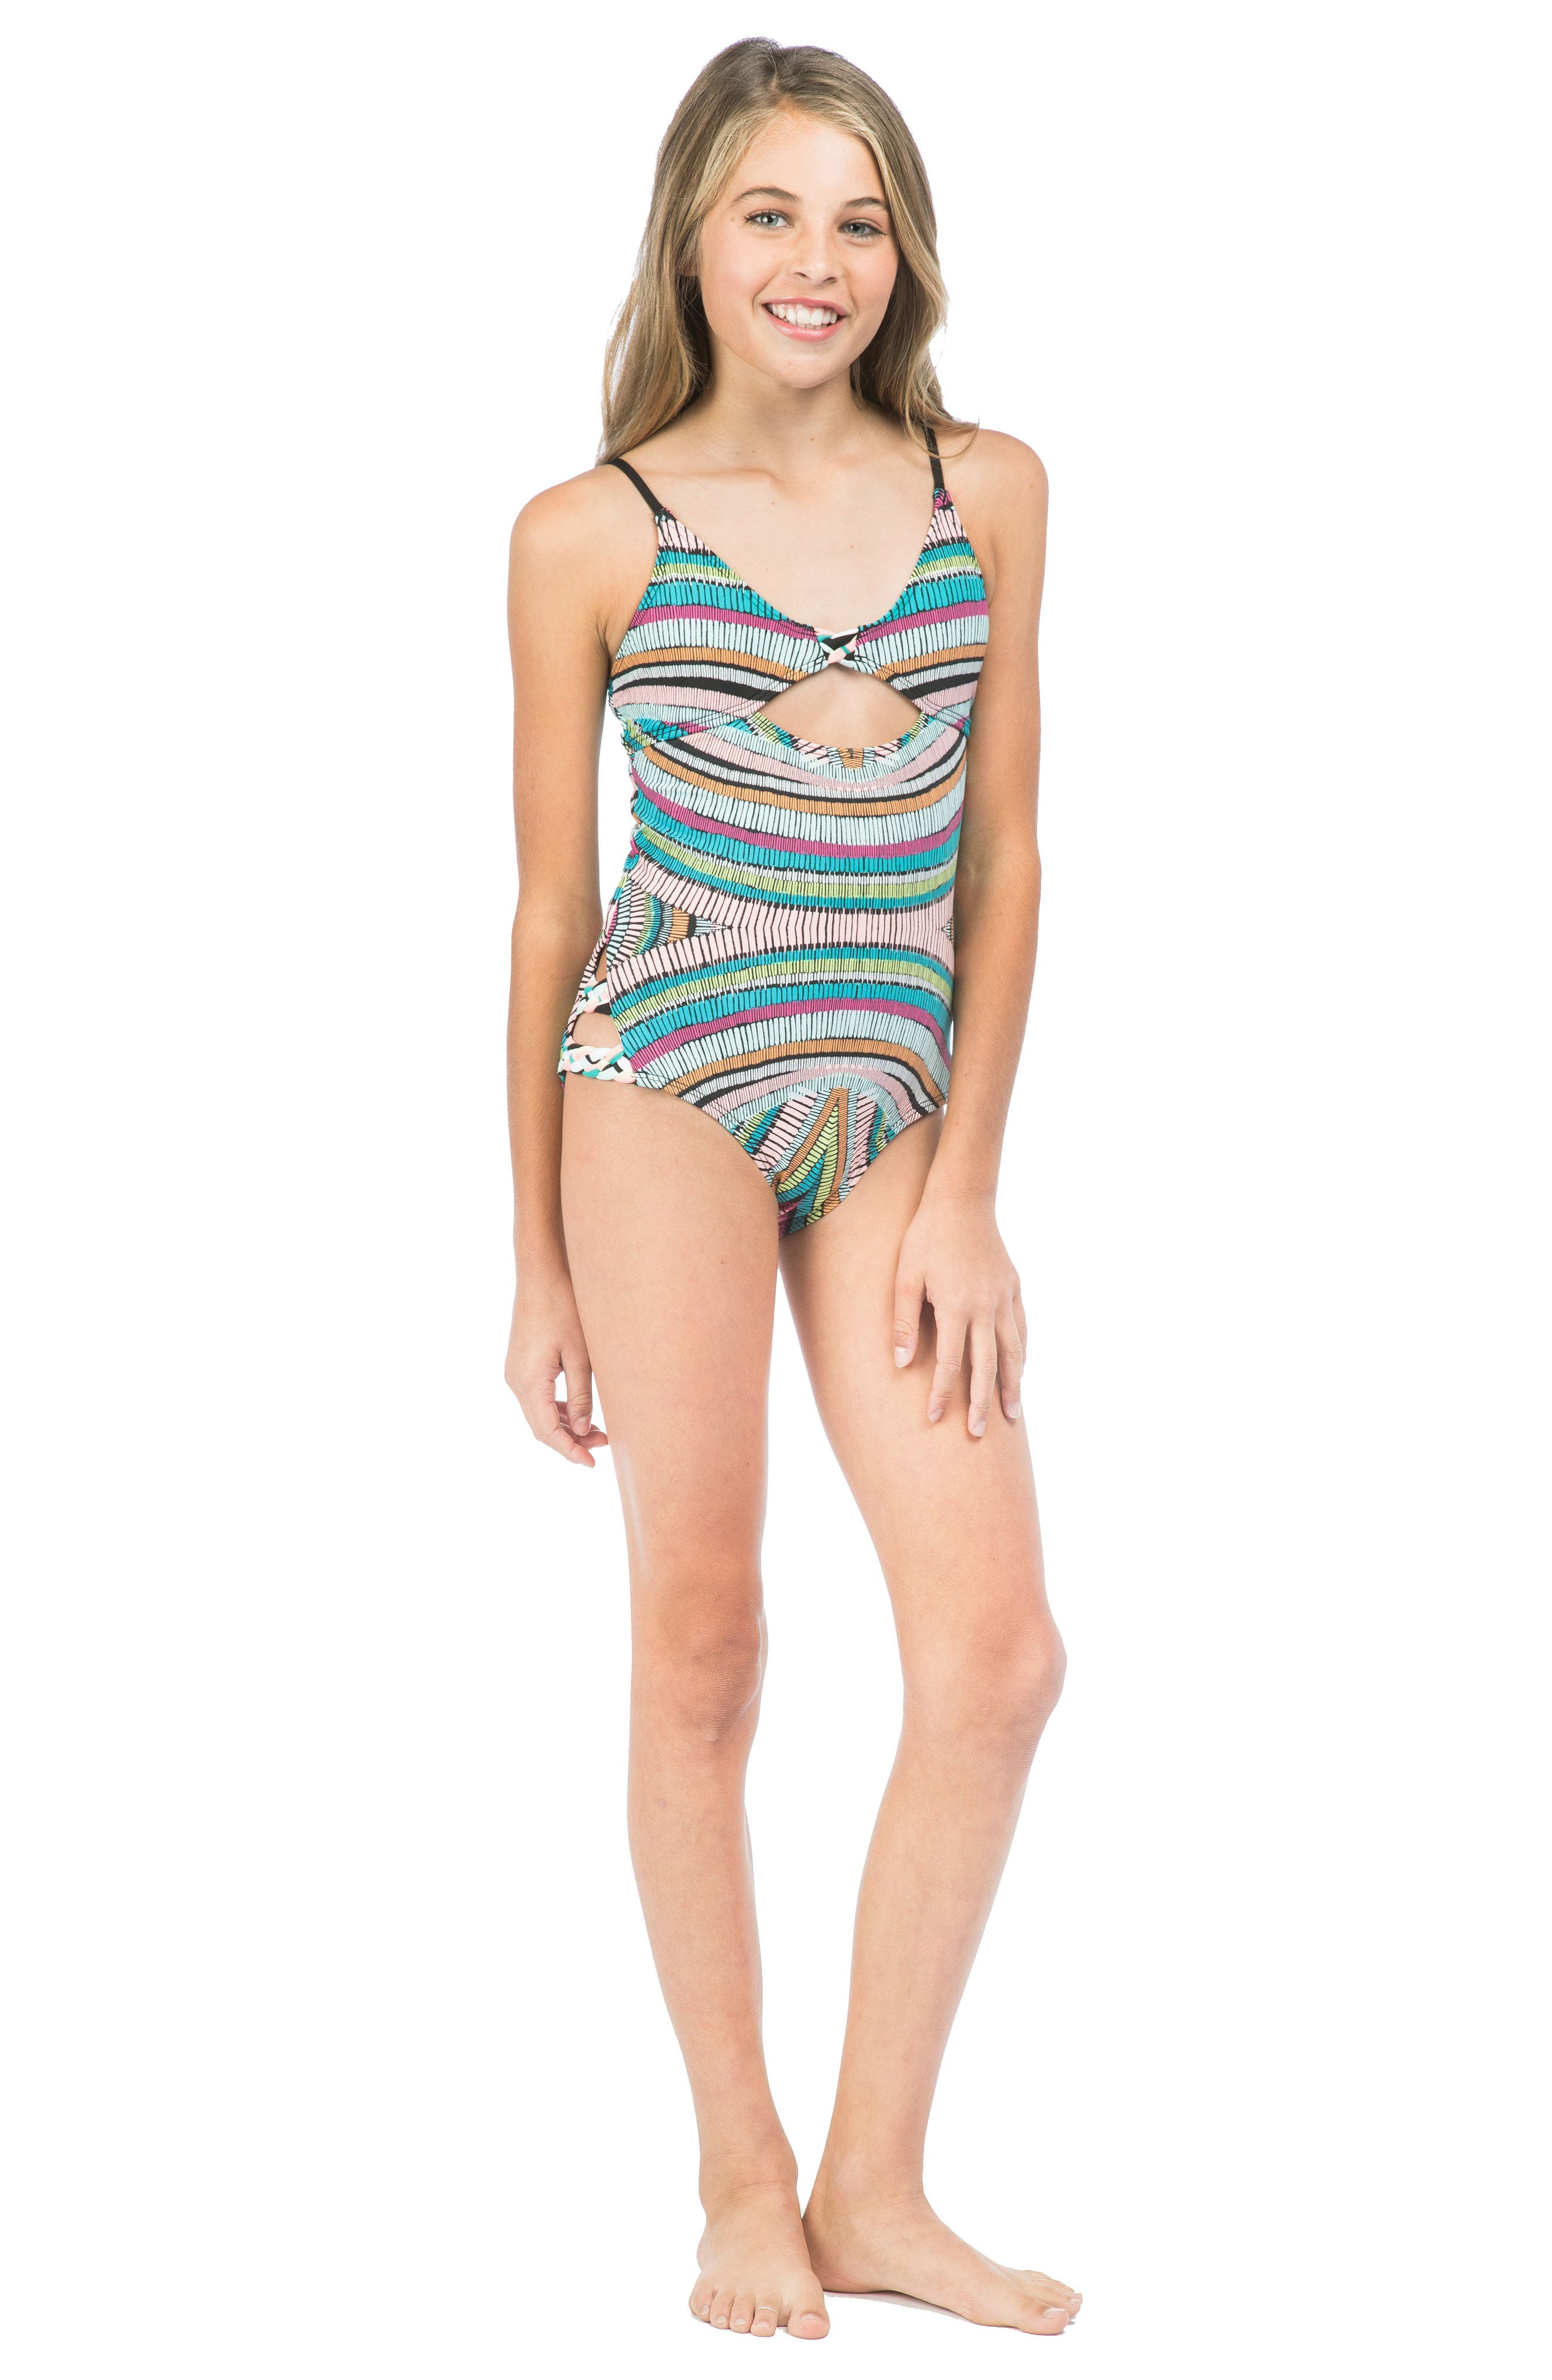 Weave Rider One-Piece Swimsuit,                             Alternate thumbnail 2, color,                             300